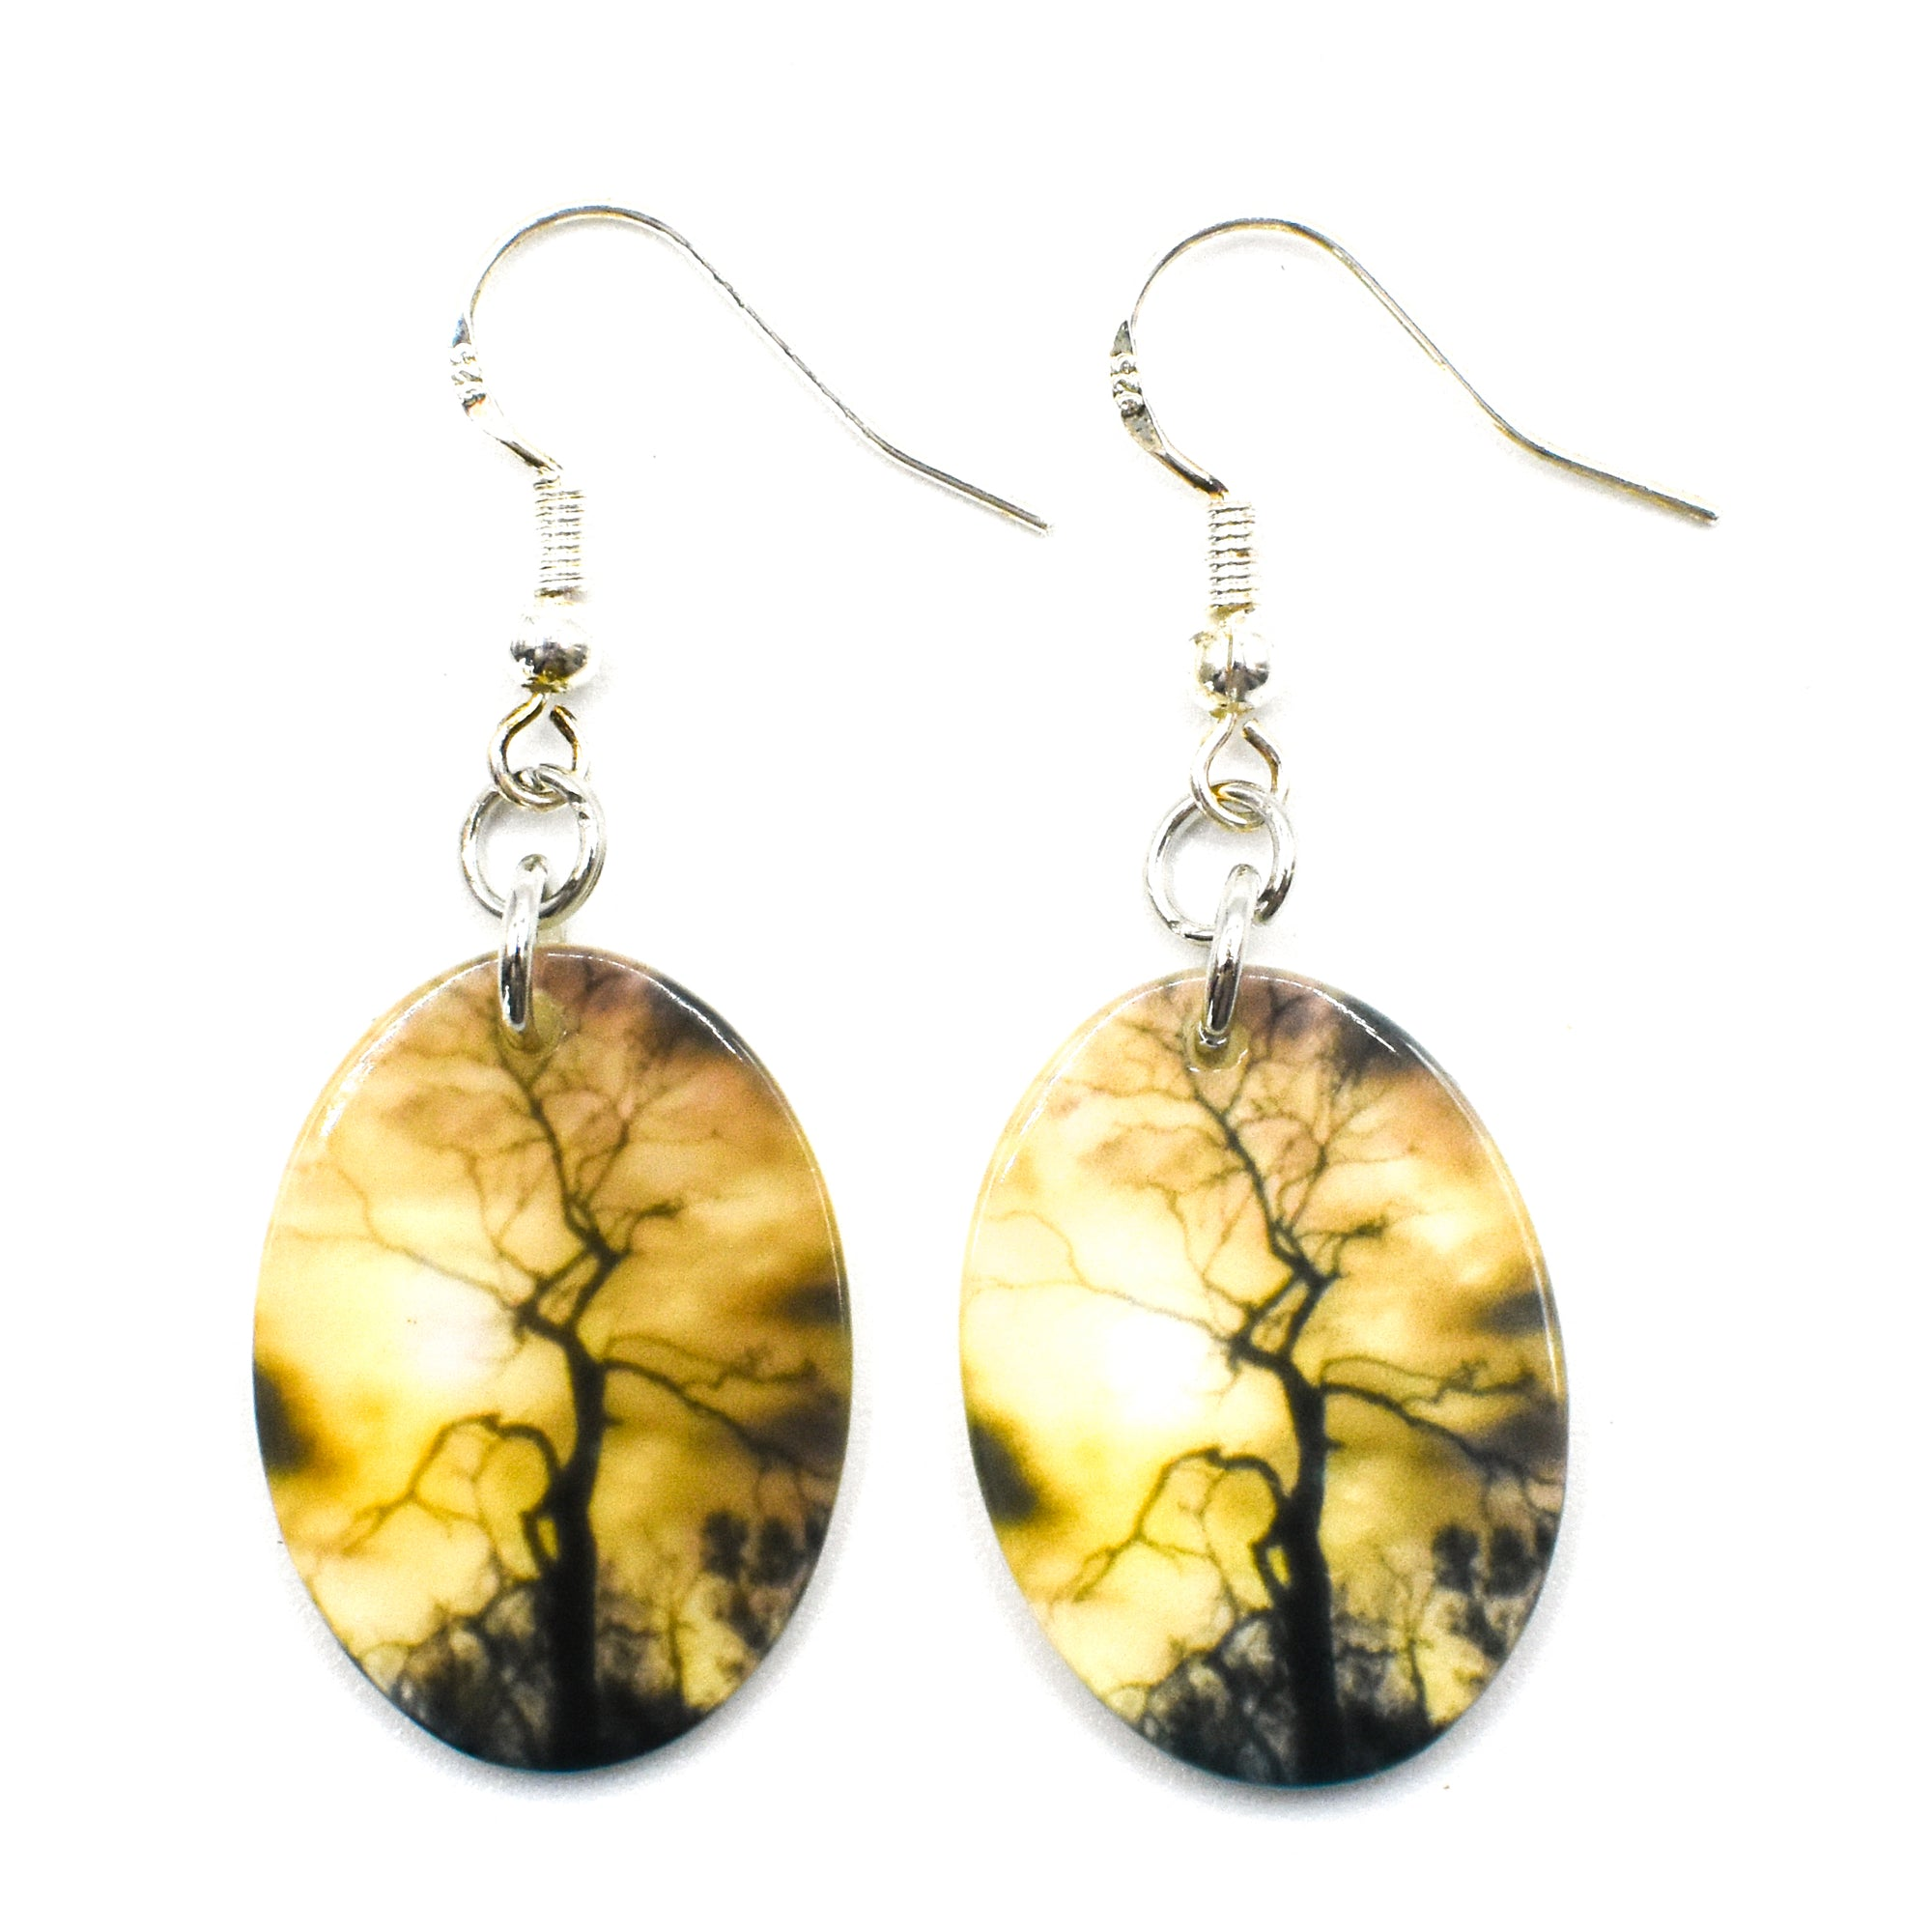 Standard view of celestial tree earrings | Wear the Wonder